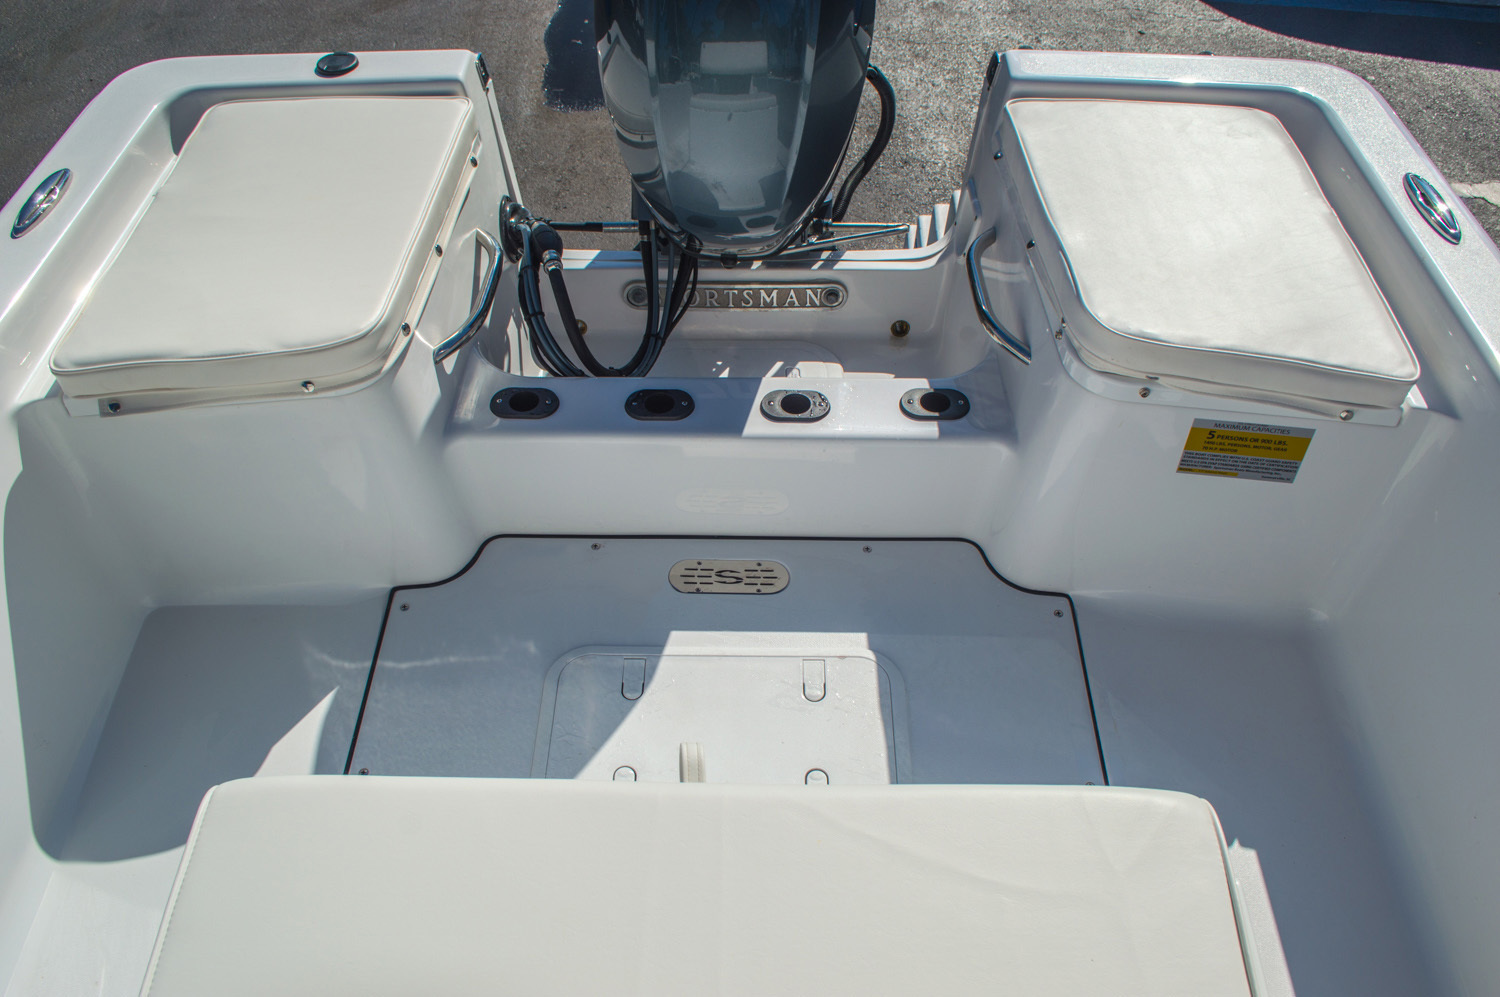 Thumbnail 12 for New 2016 Sportsman 17 Island Reef boat for sale in West Palm Beach, FL